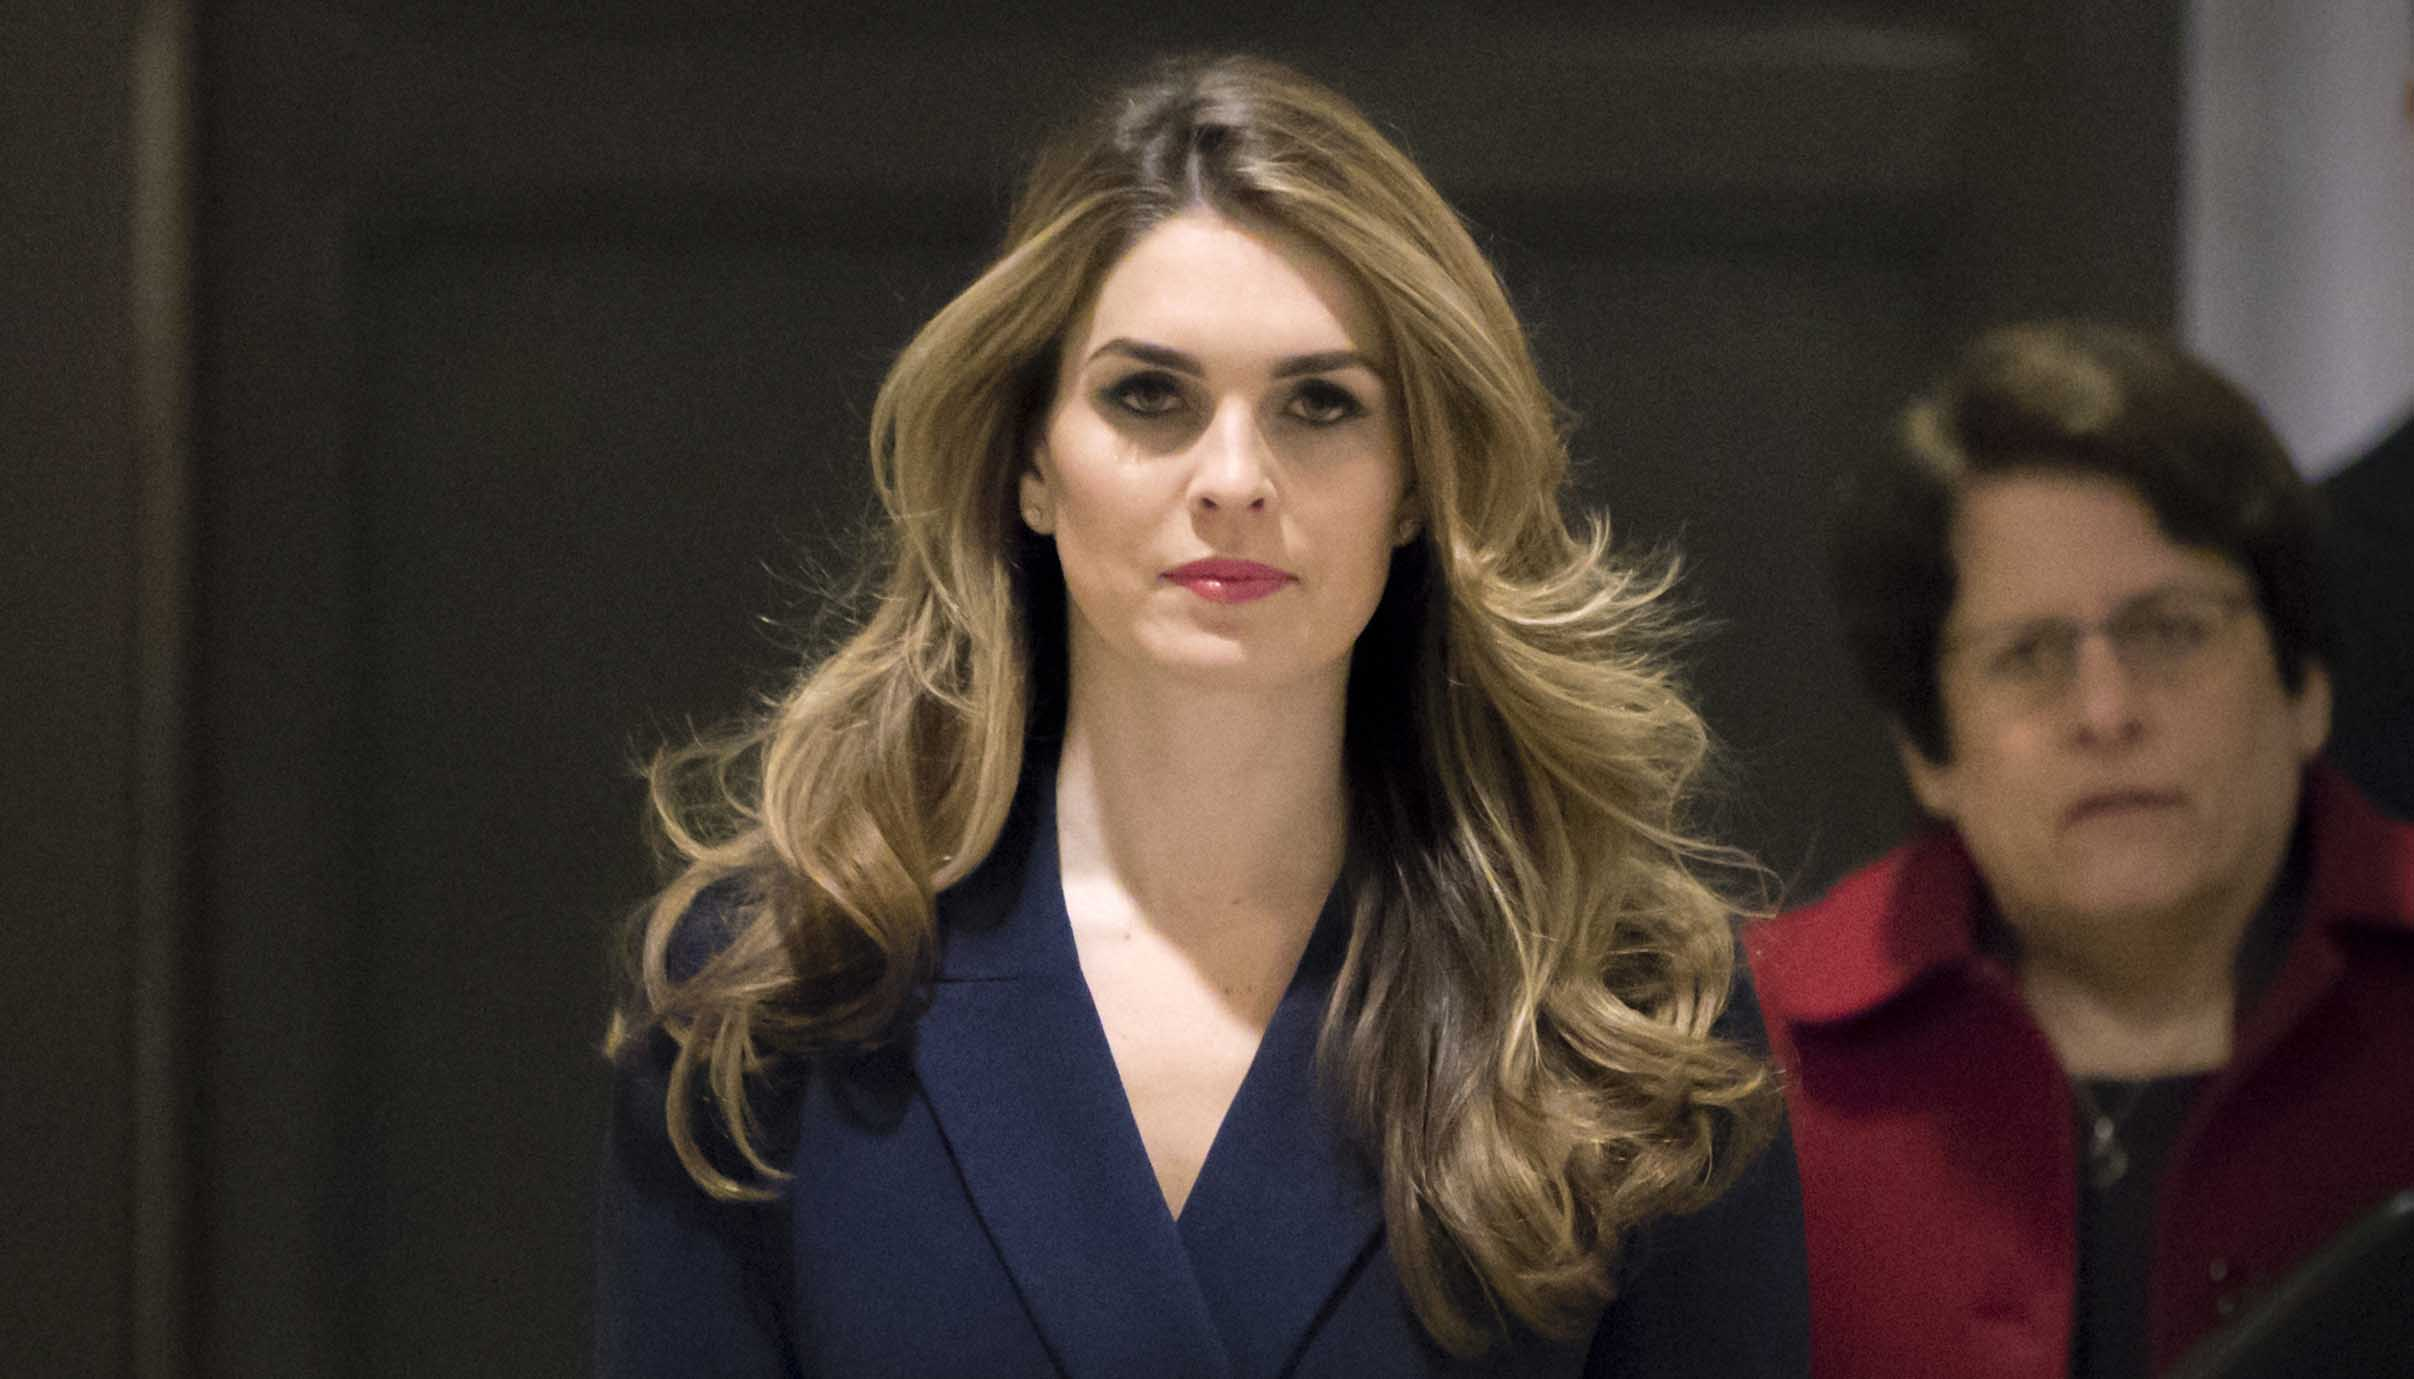 Hope Hicks - One of President Donald Trump's most loyal aides, she was Trump's fourth communications director before resigning in February. She announced the move after she was interviewed for nine hours by the panel investigating Russian interference in the 2016 election and contact between Trump's campaign and Russia. She is joining Fox News's parent company as executive vice president and chief communications officer in 2019. (AP Photo/J. Scott Applewhite)